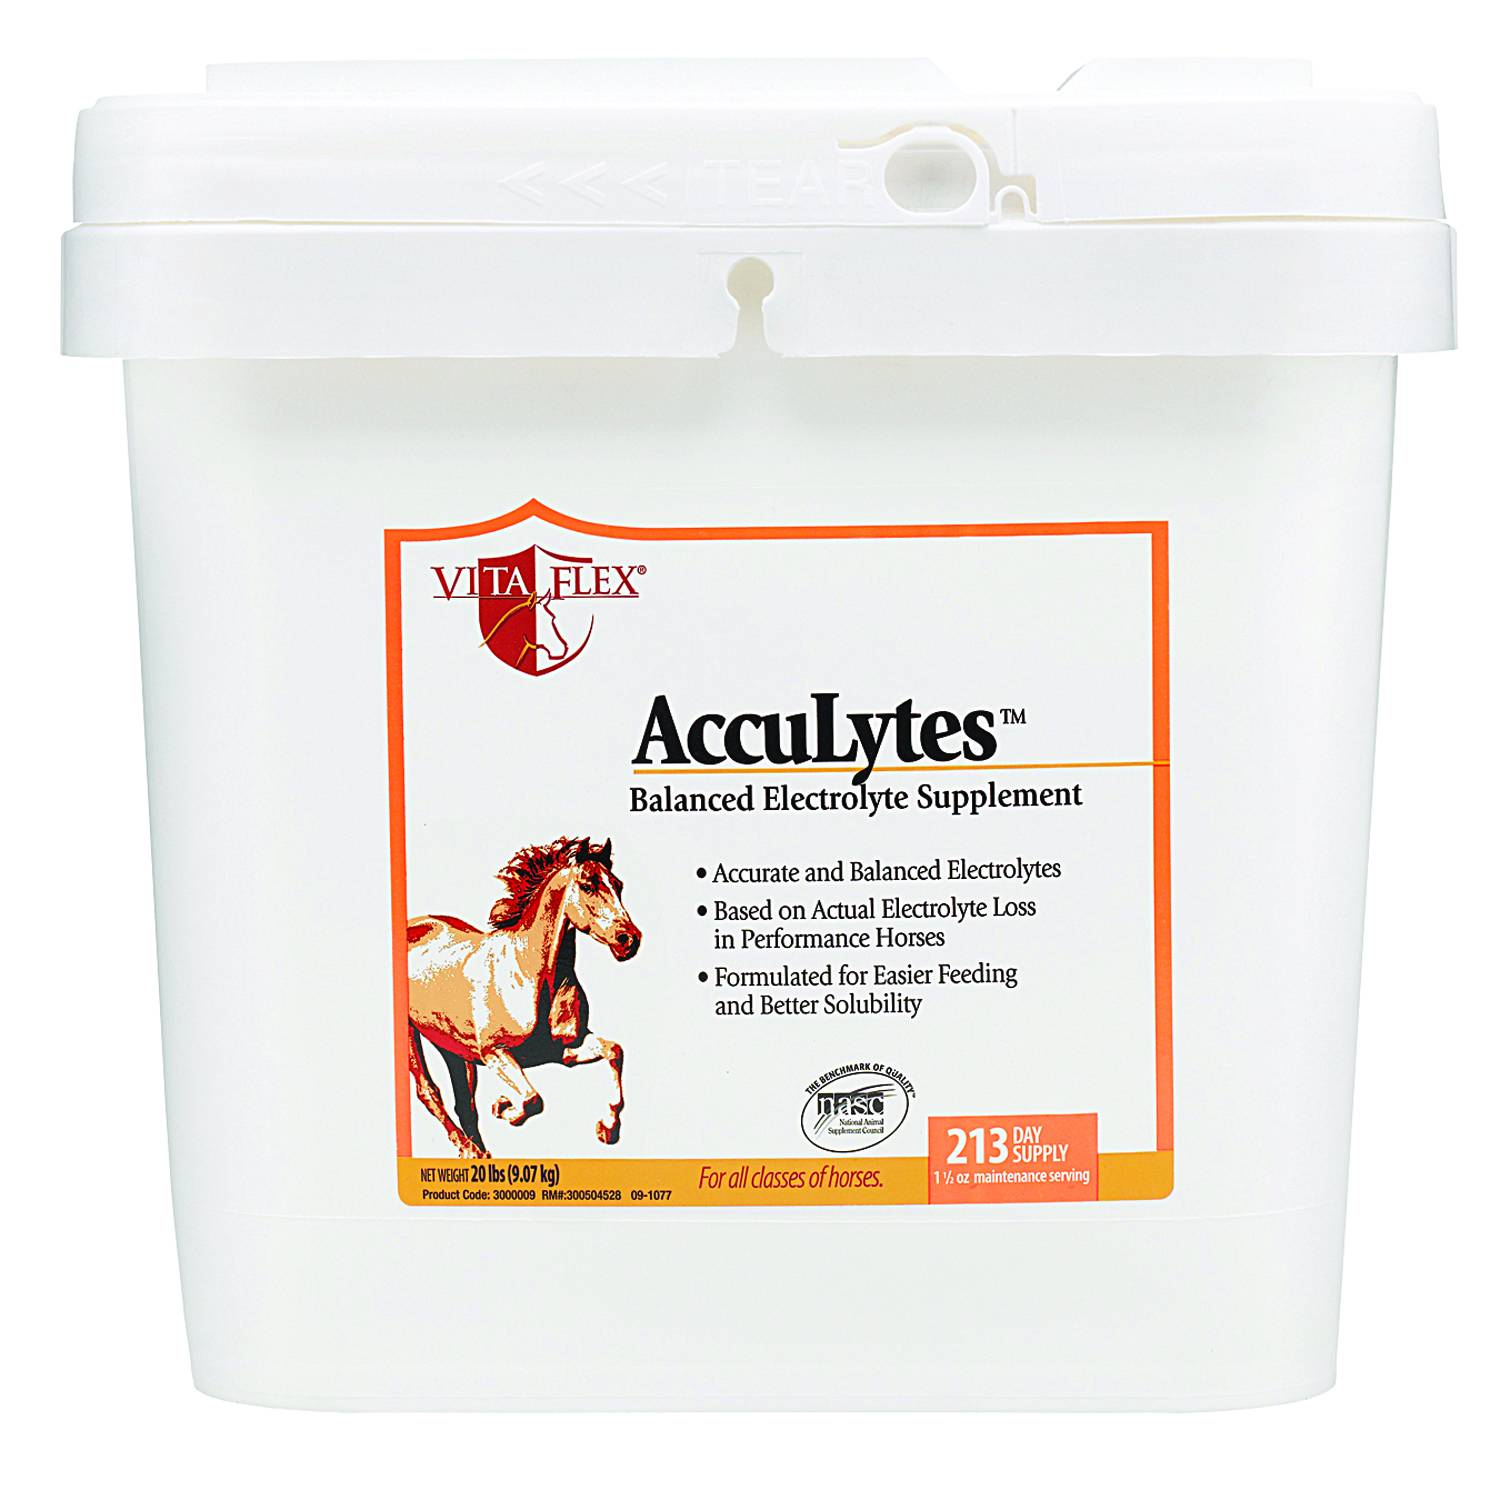 acculytes on lovemypets.com